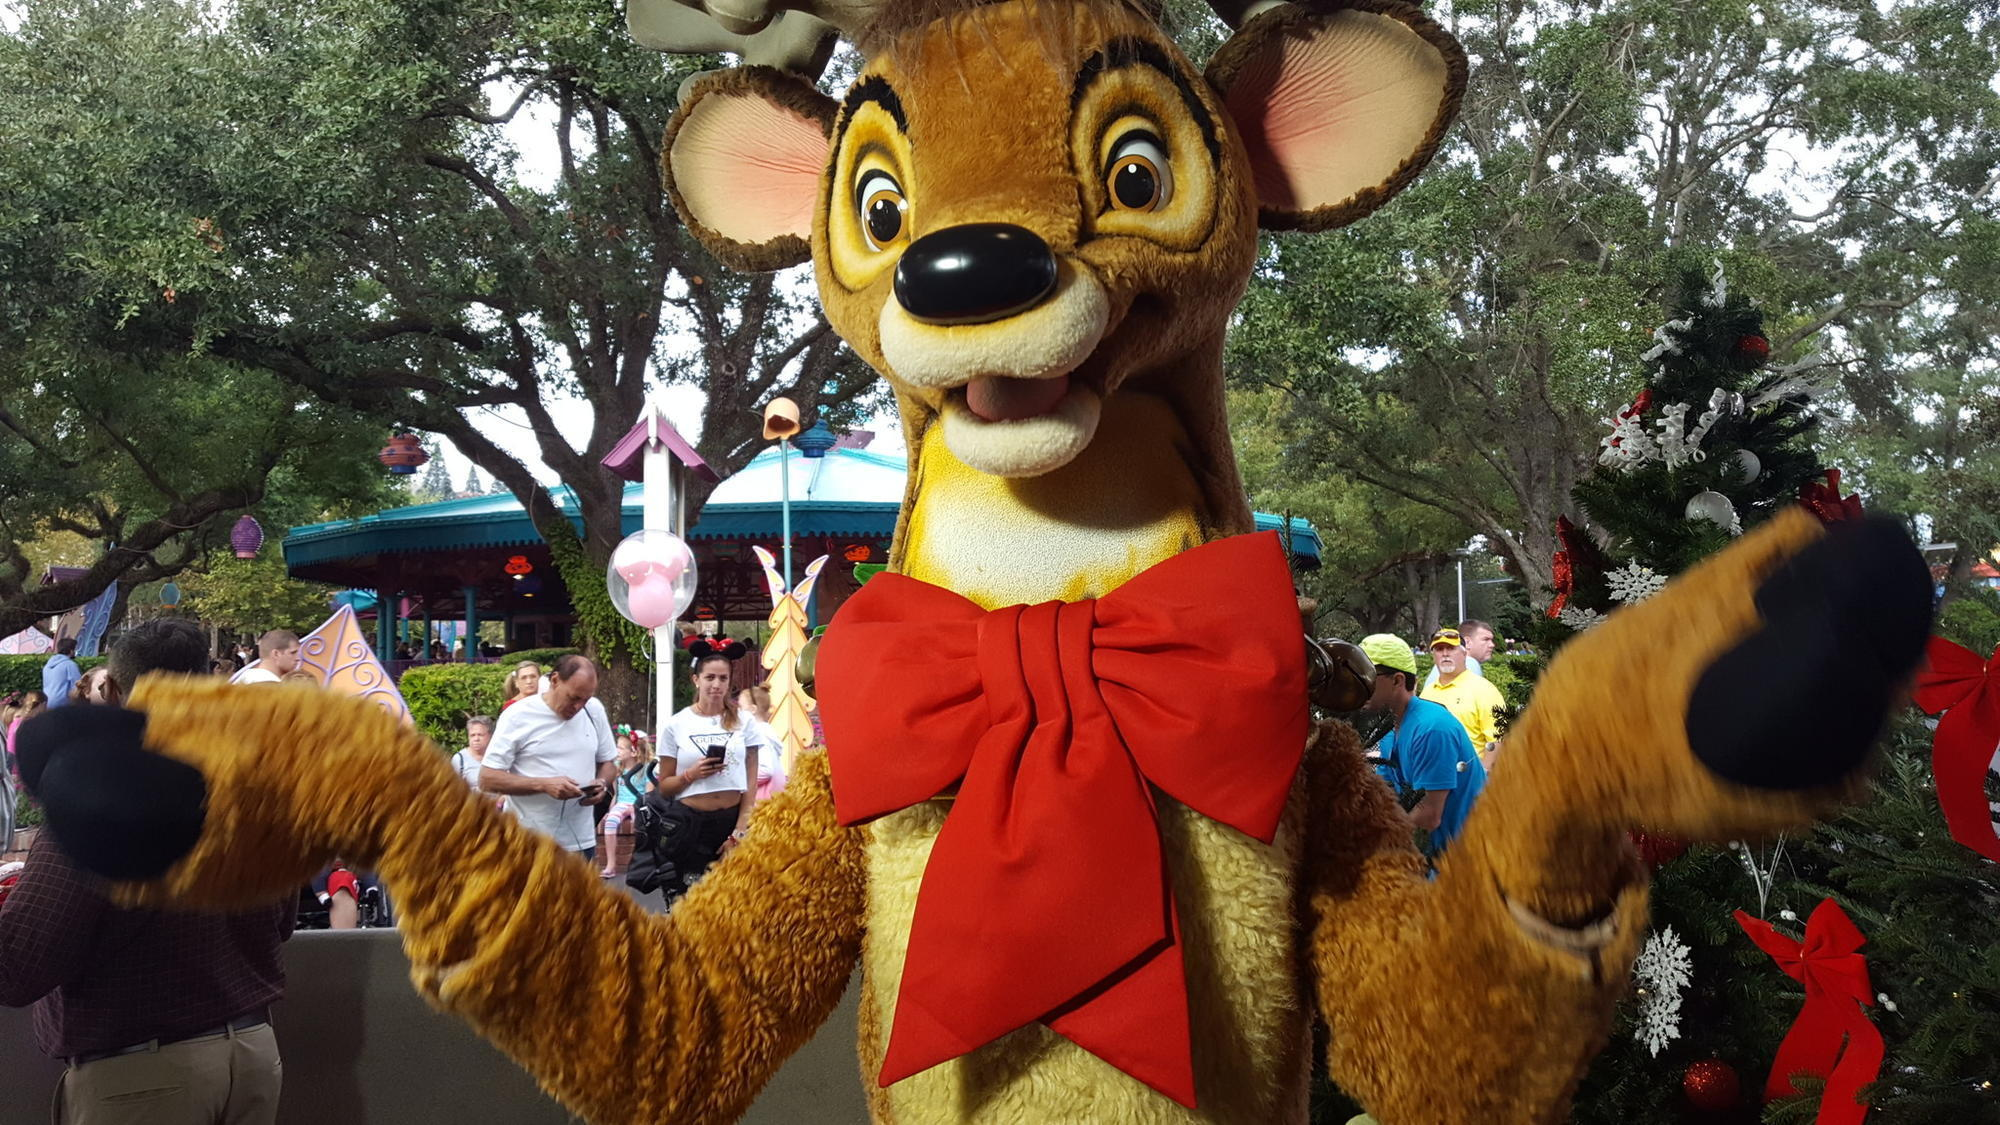 Entertainment for all ages at Mickey's Very Merry Christmas Party - Orlando Sentinel